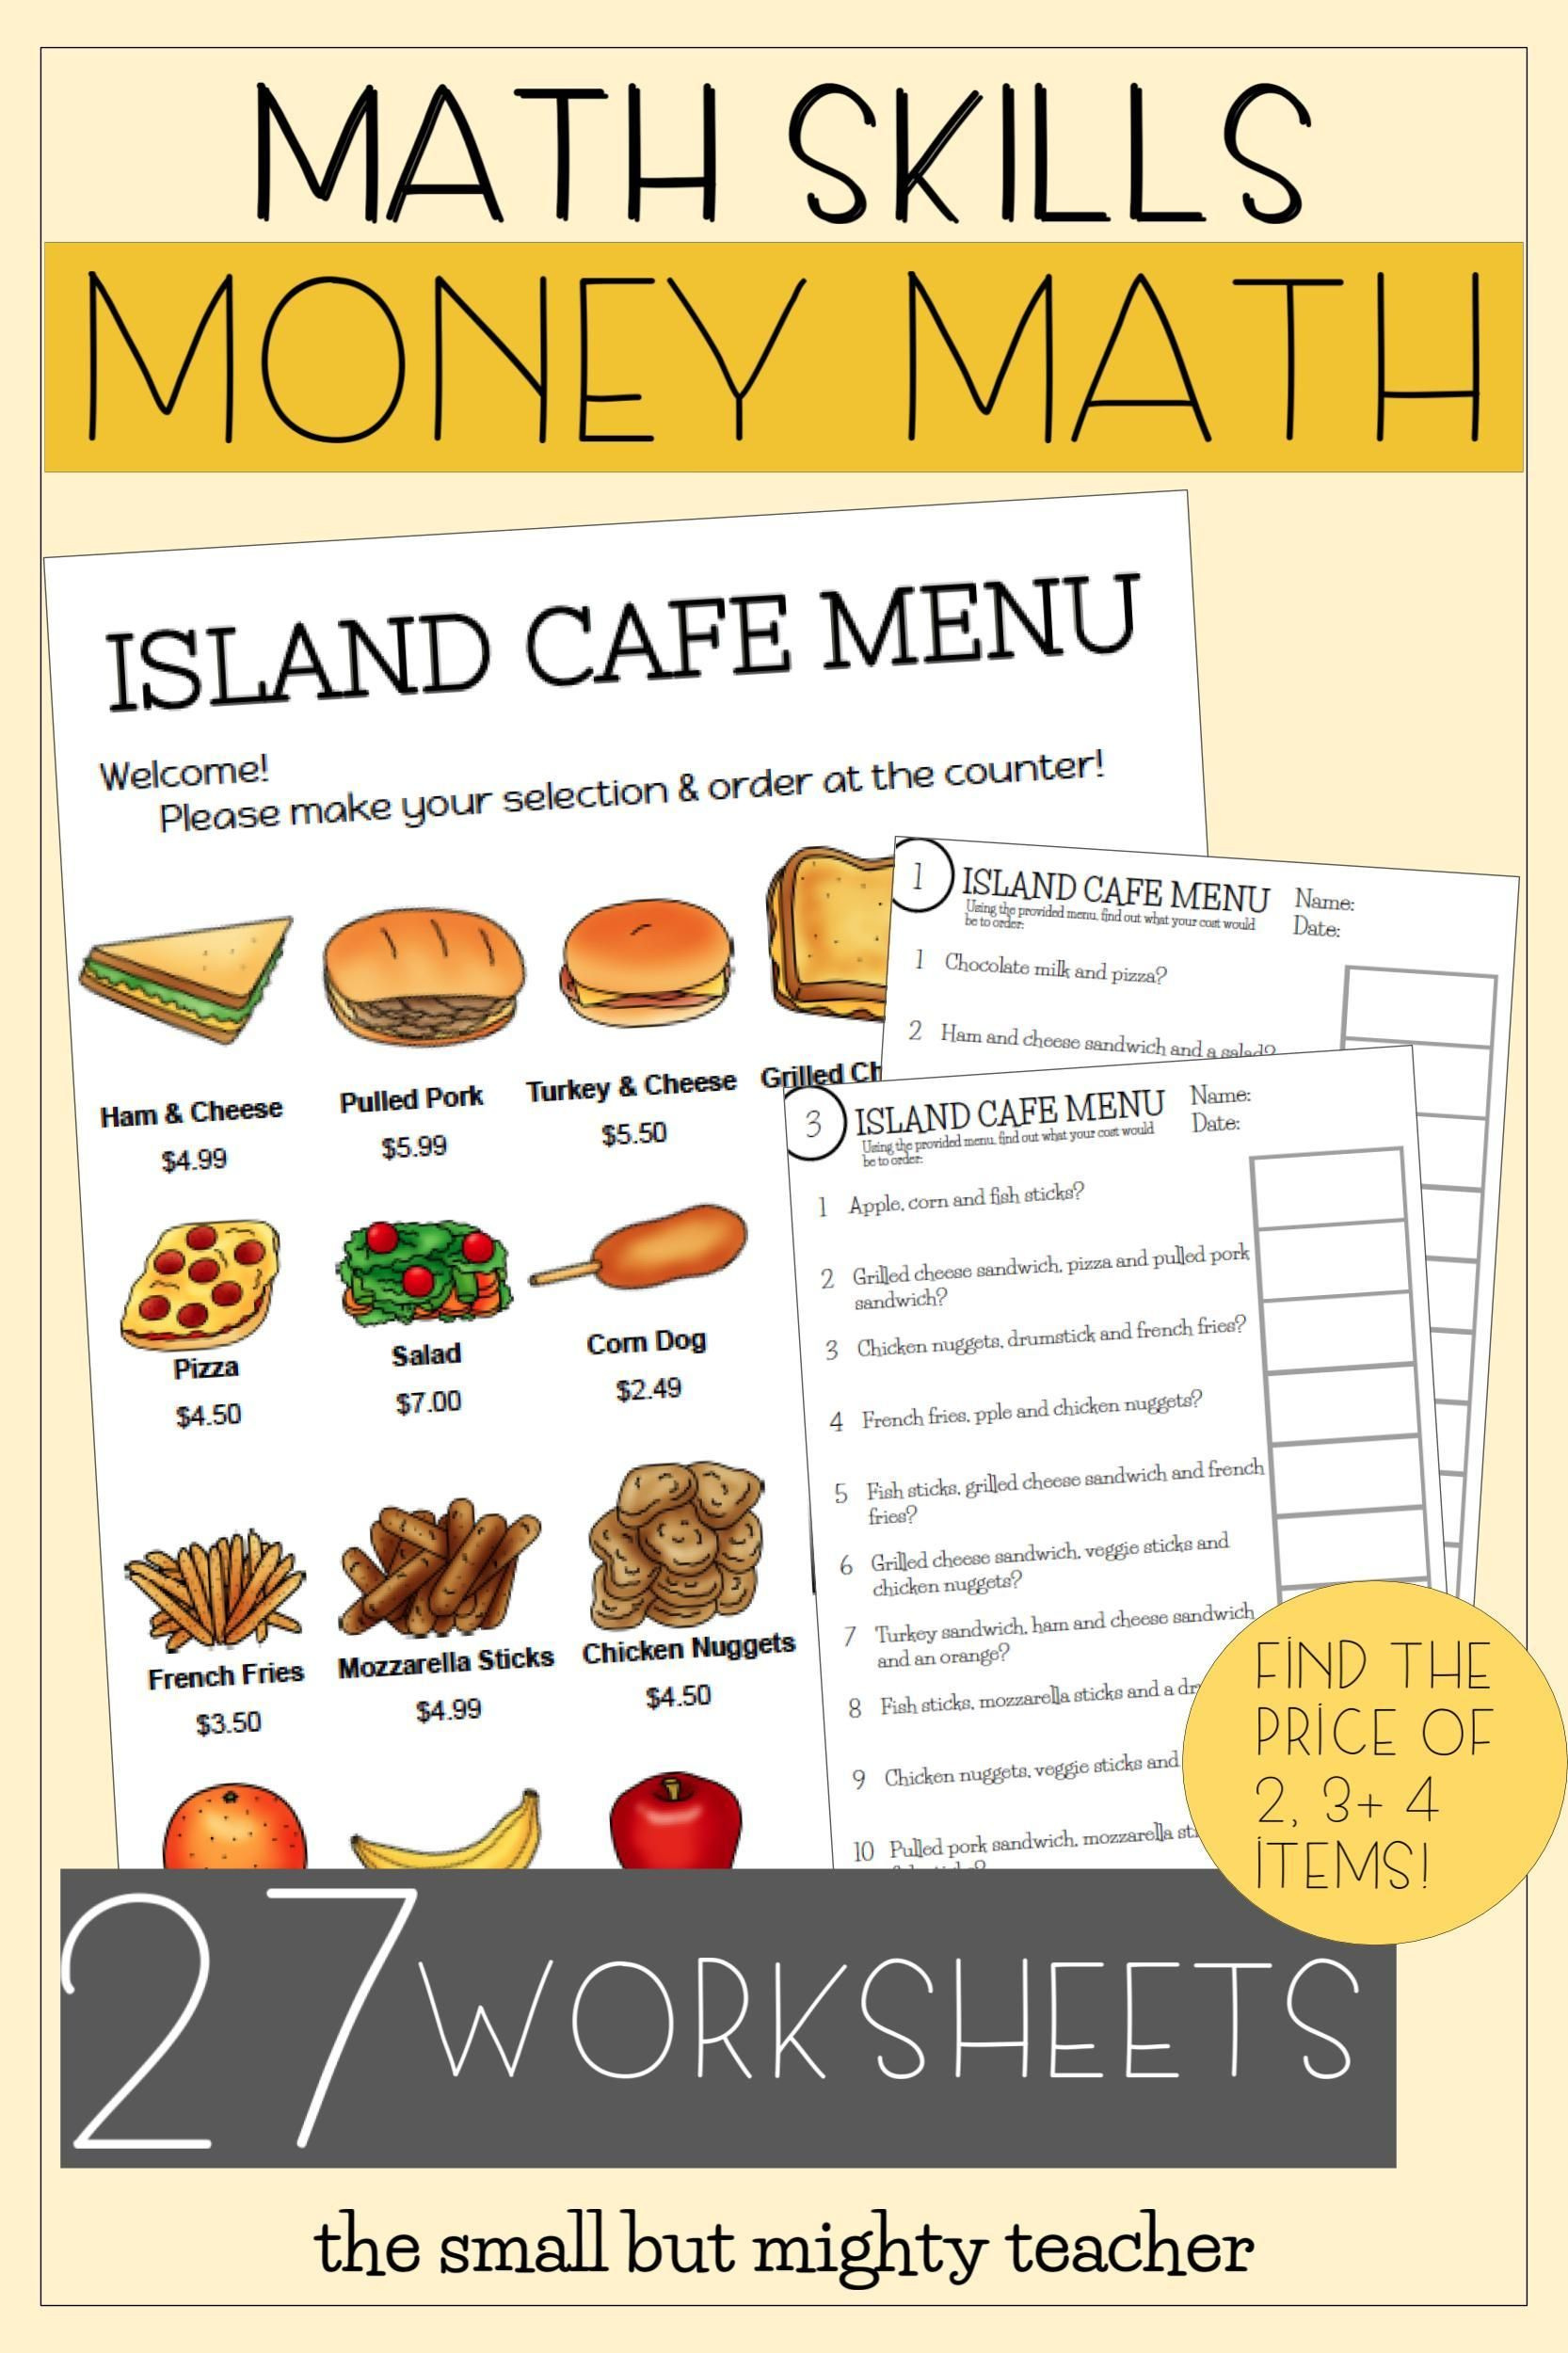 Menu Math Worksheets Bulletin Board Set Up Money Math Money Math Activities Math